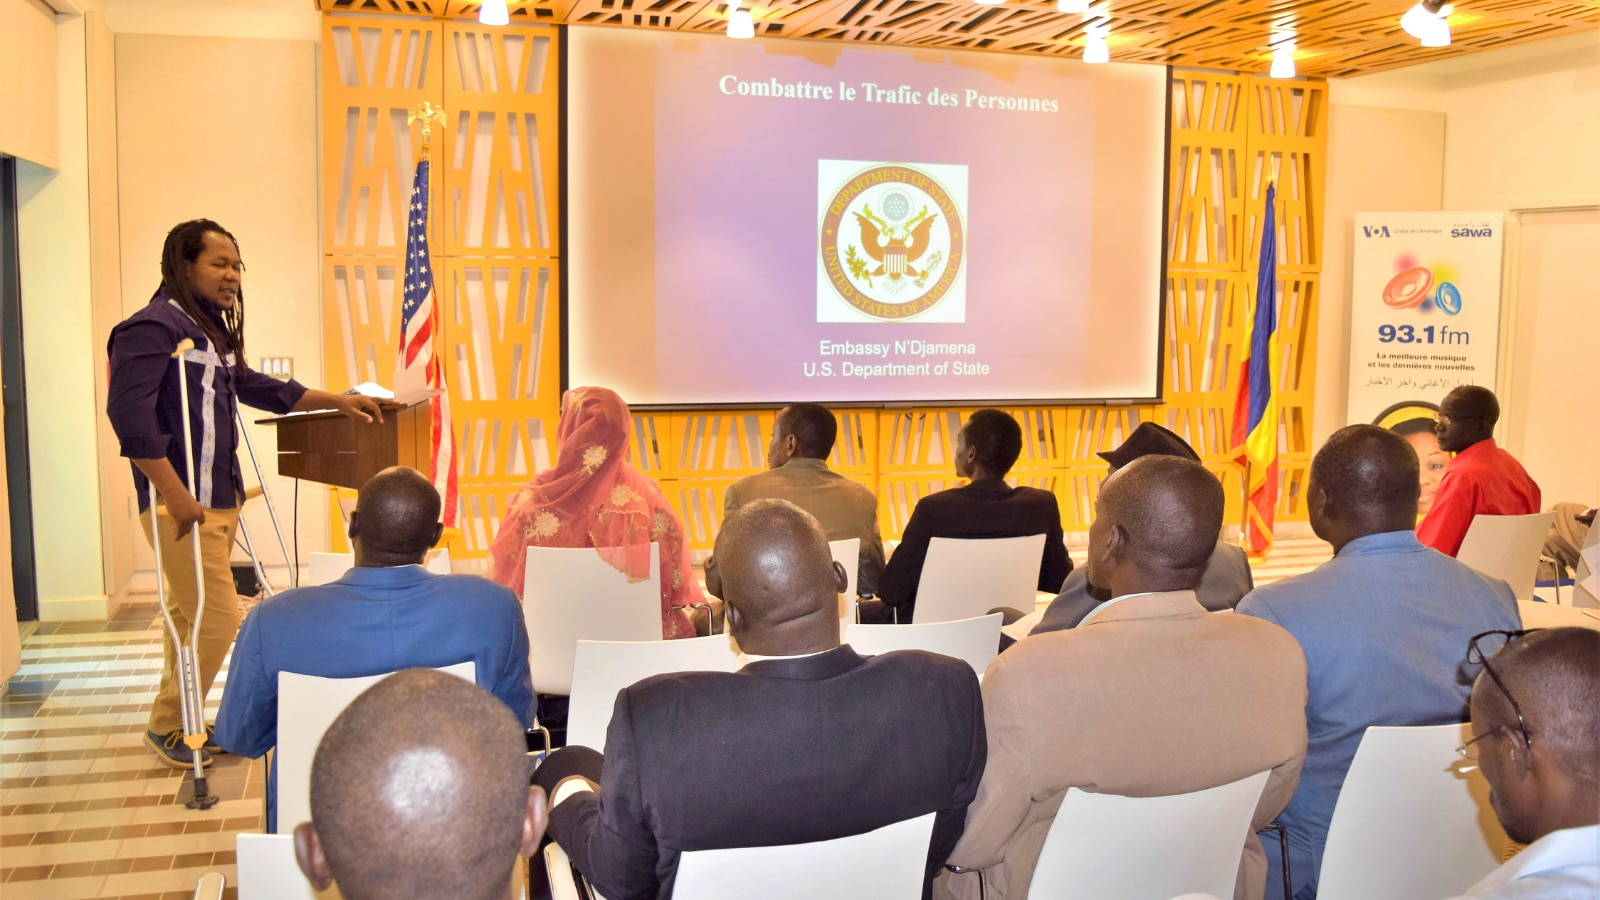 Djas Ratebaye gives a presentation on Trafficking in Persons for criminal and judicial police officers in Chad, N'Djamena. (Photo courtesy of Ali Kardas of the Public Affairs Section of U.S. Embassy N'Djamena)